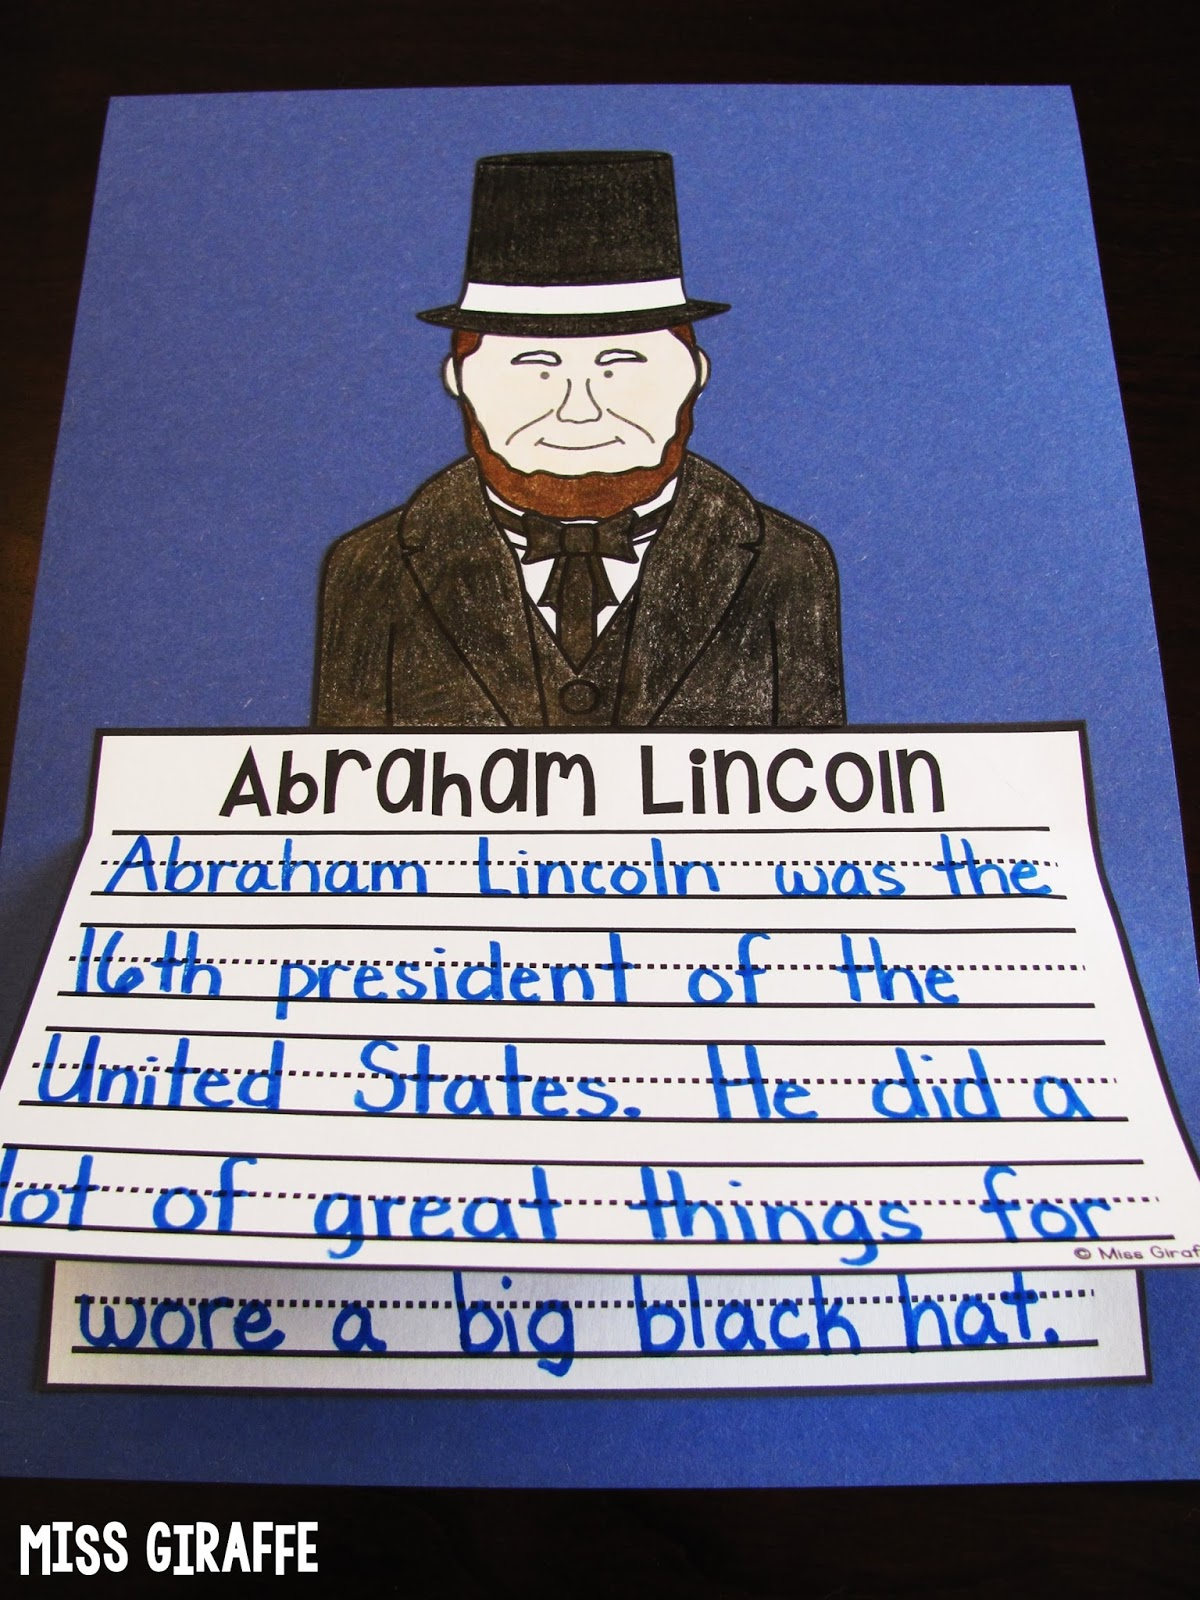 lincoln writings مشاهدة الفيديو writings of abraham lincoln scholars and guests examined the final stages of the civil war and beginning of the reconstruction era through the writings of president abraham lincoln.